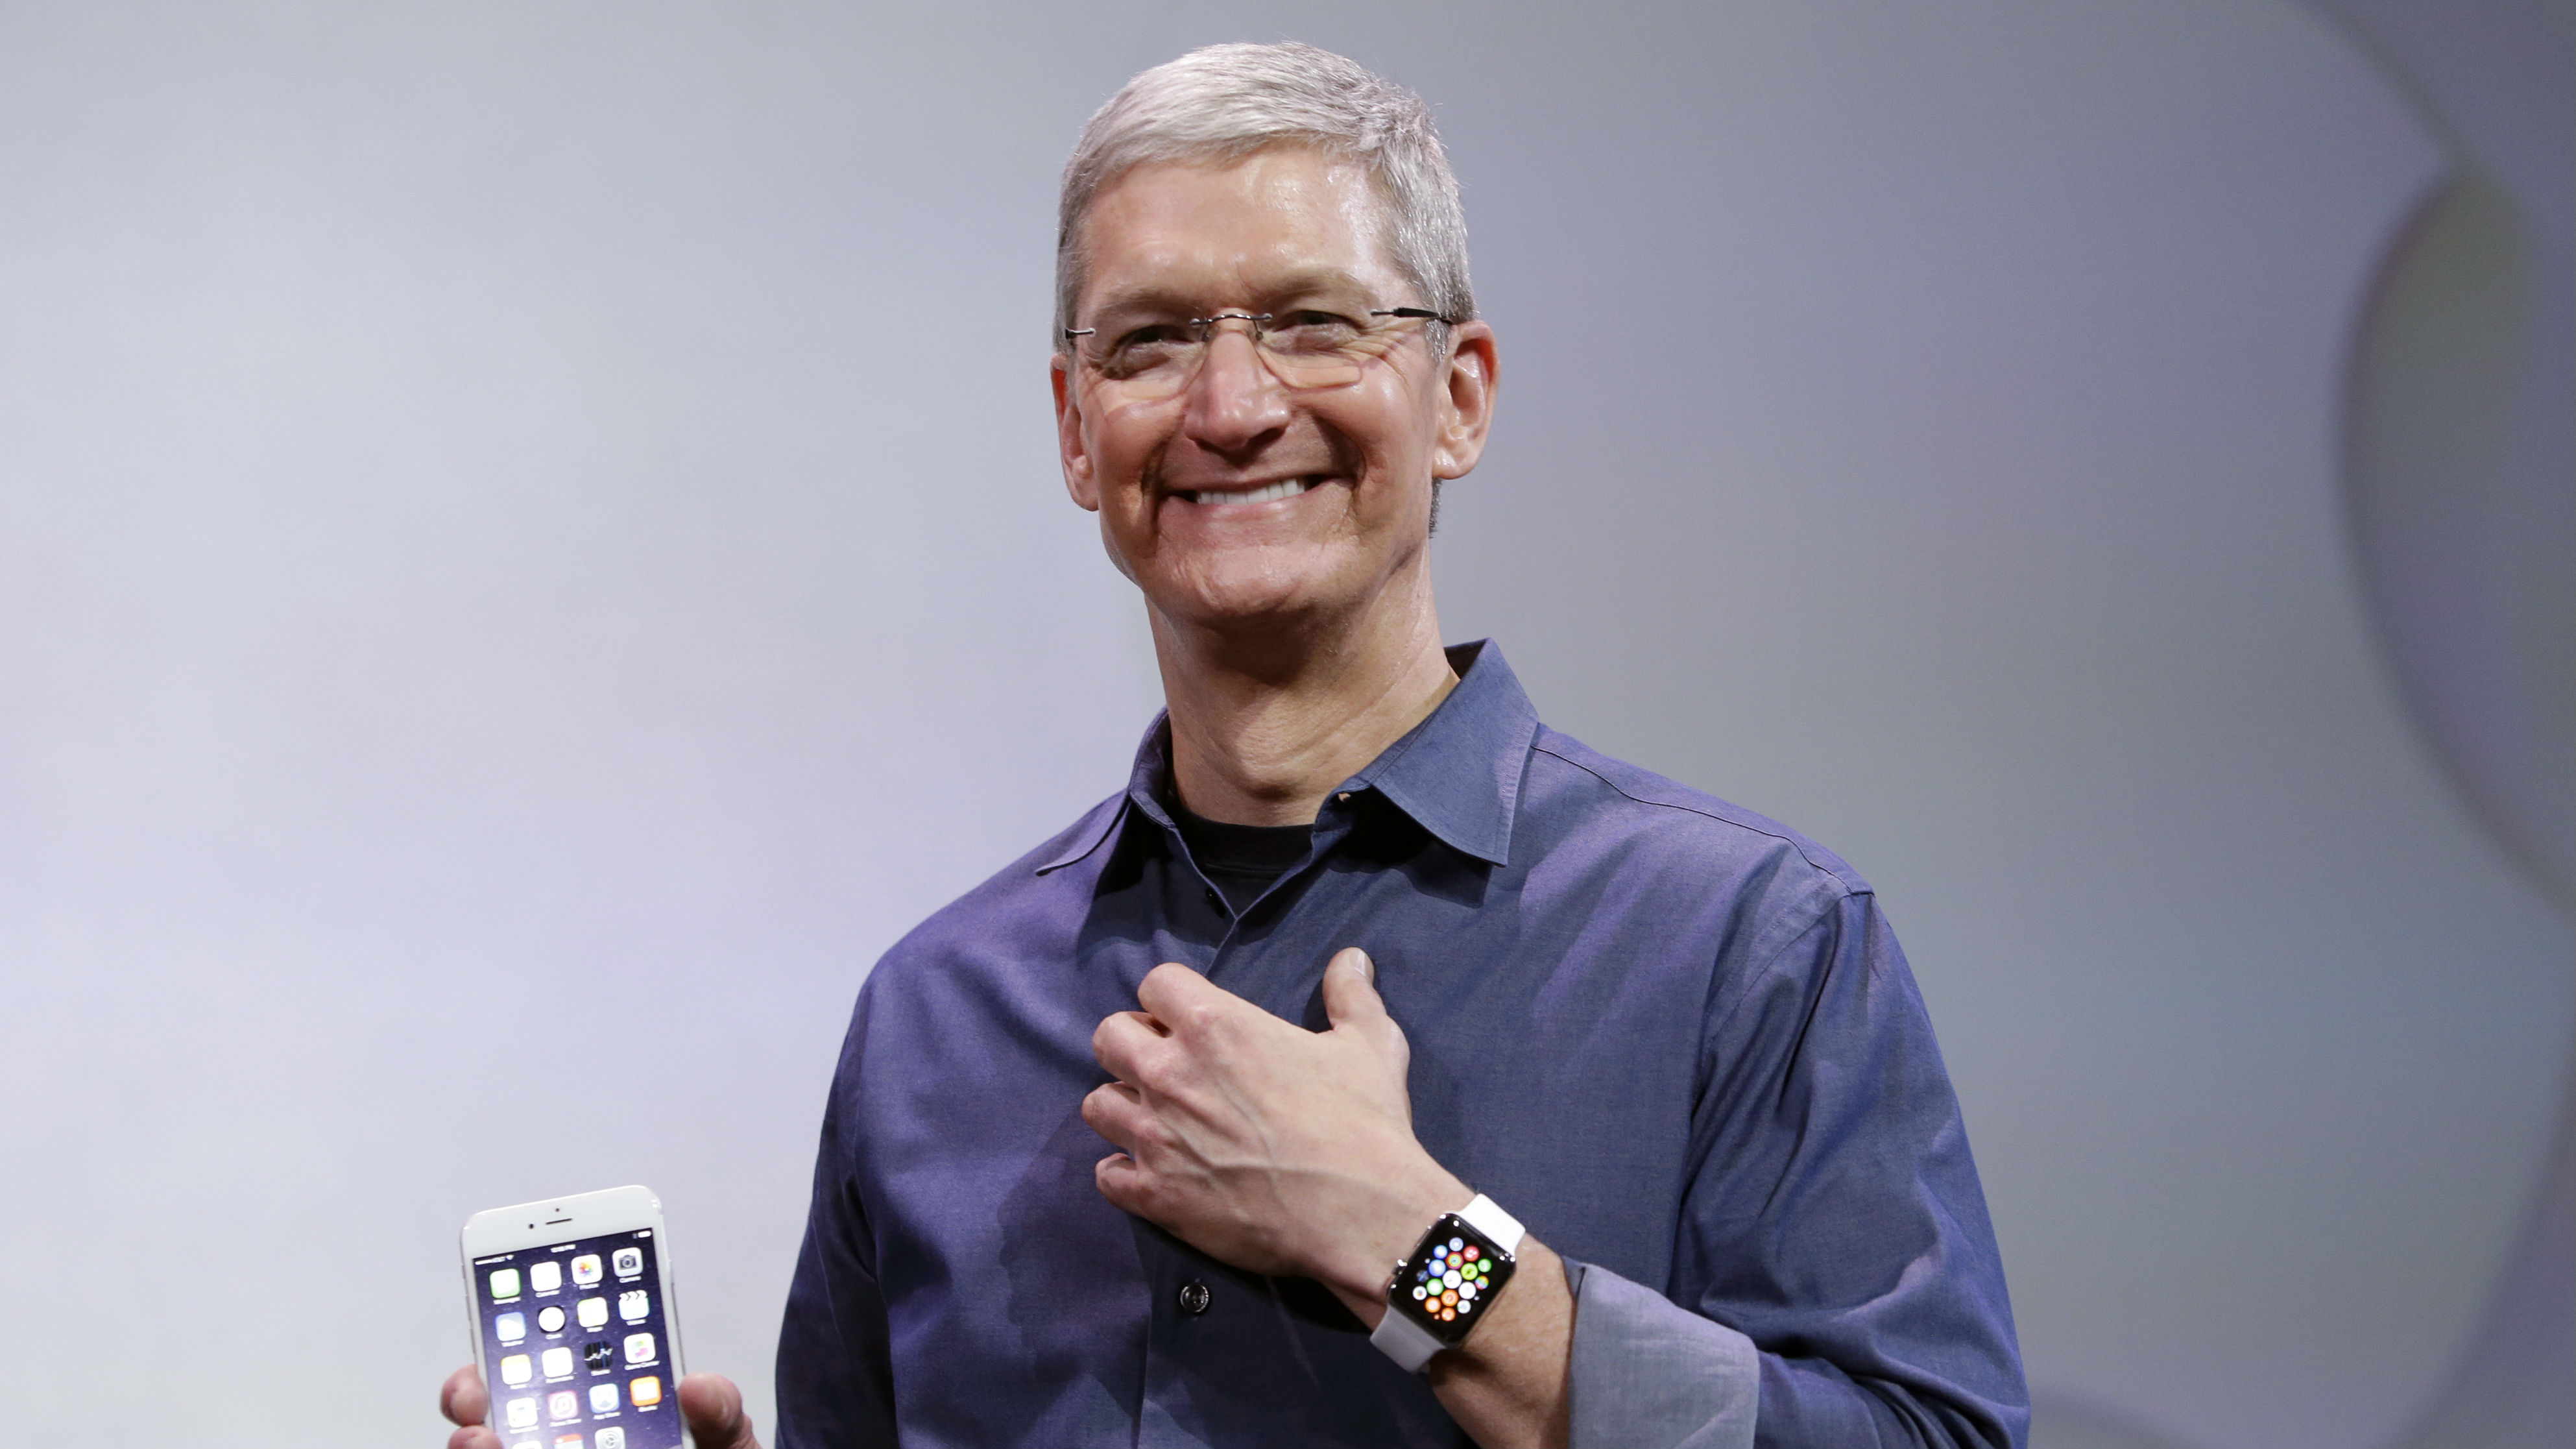 Apple CEO Tim Cook, holding an IPhone 6 Plus, discusses the new Apple Watch and iPhone 6s on Tuesday, Sept. 9, 2014, in Cupertino, Calif. (AP Photo/Marcio Jose Sanchez)